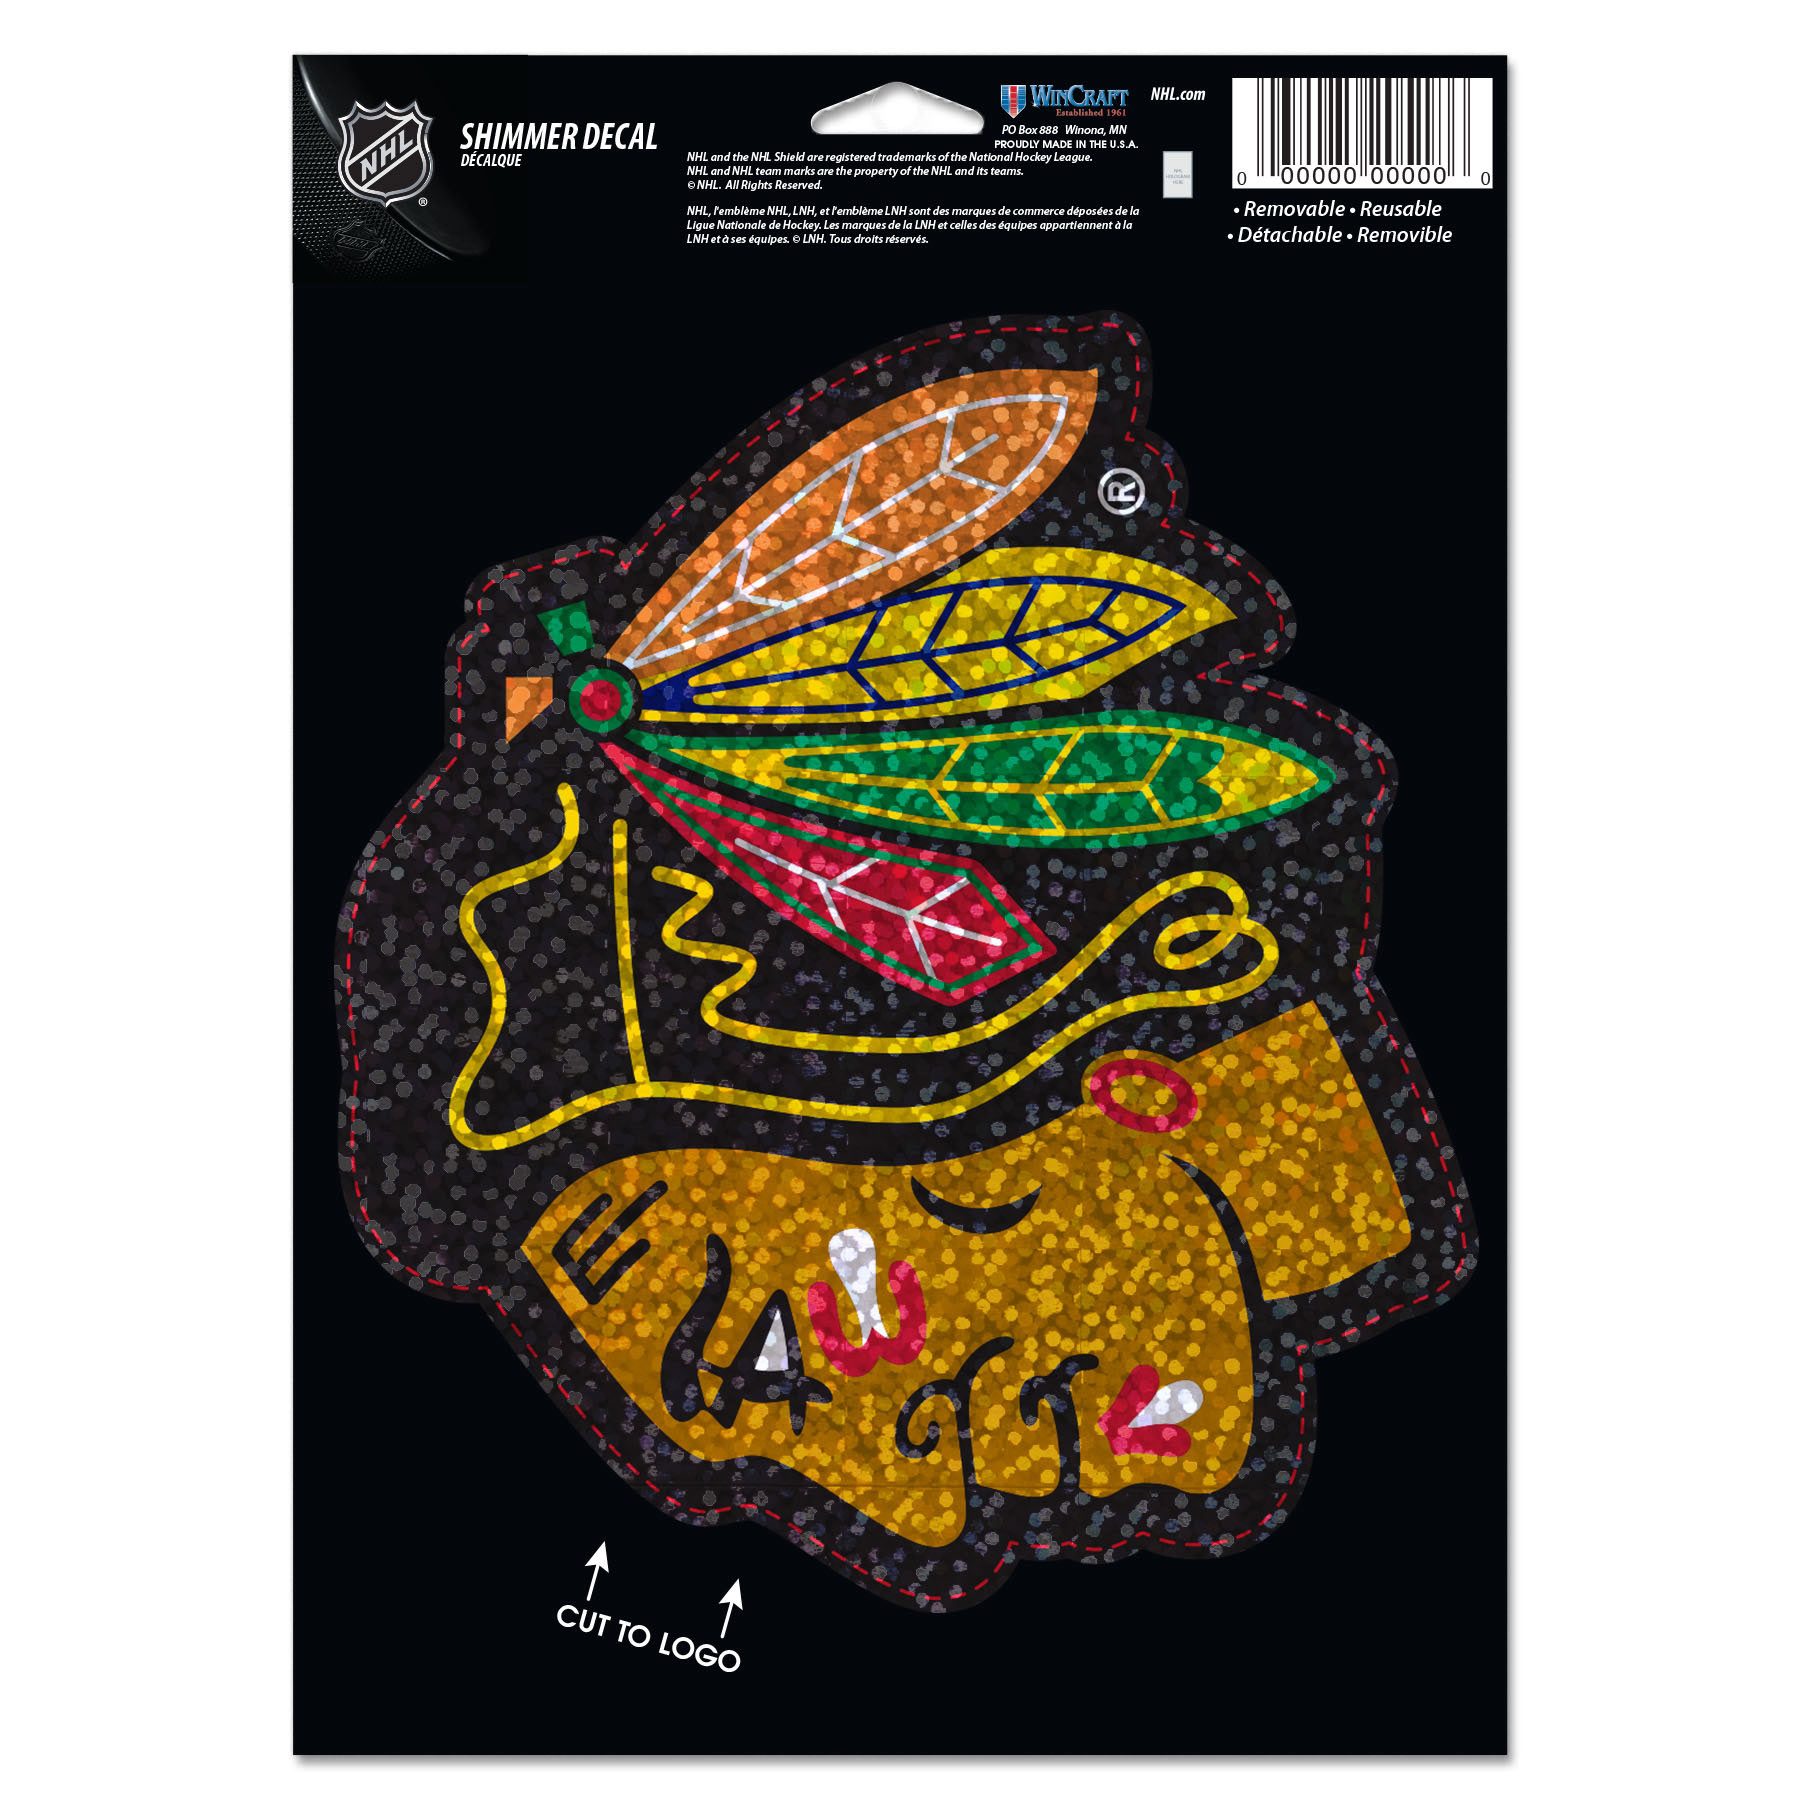 "Chicago Blackhawks WinCraft 5"" x 7"" Shimmer Decal - No Size"